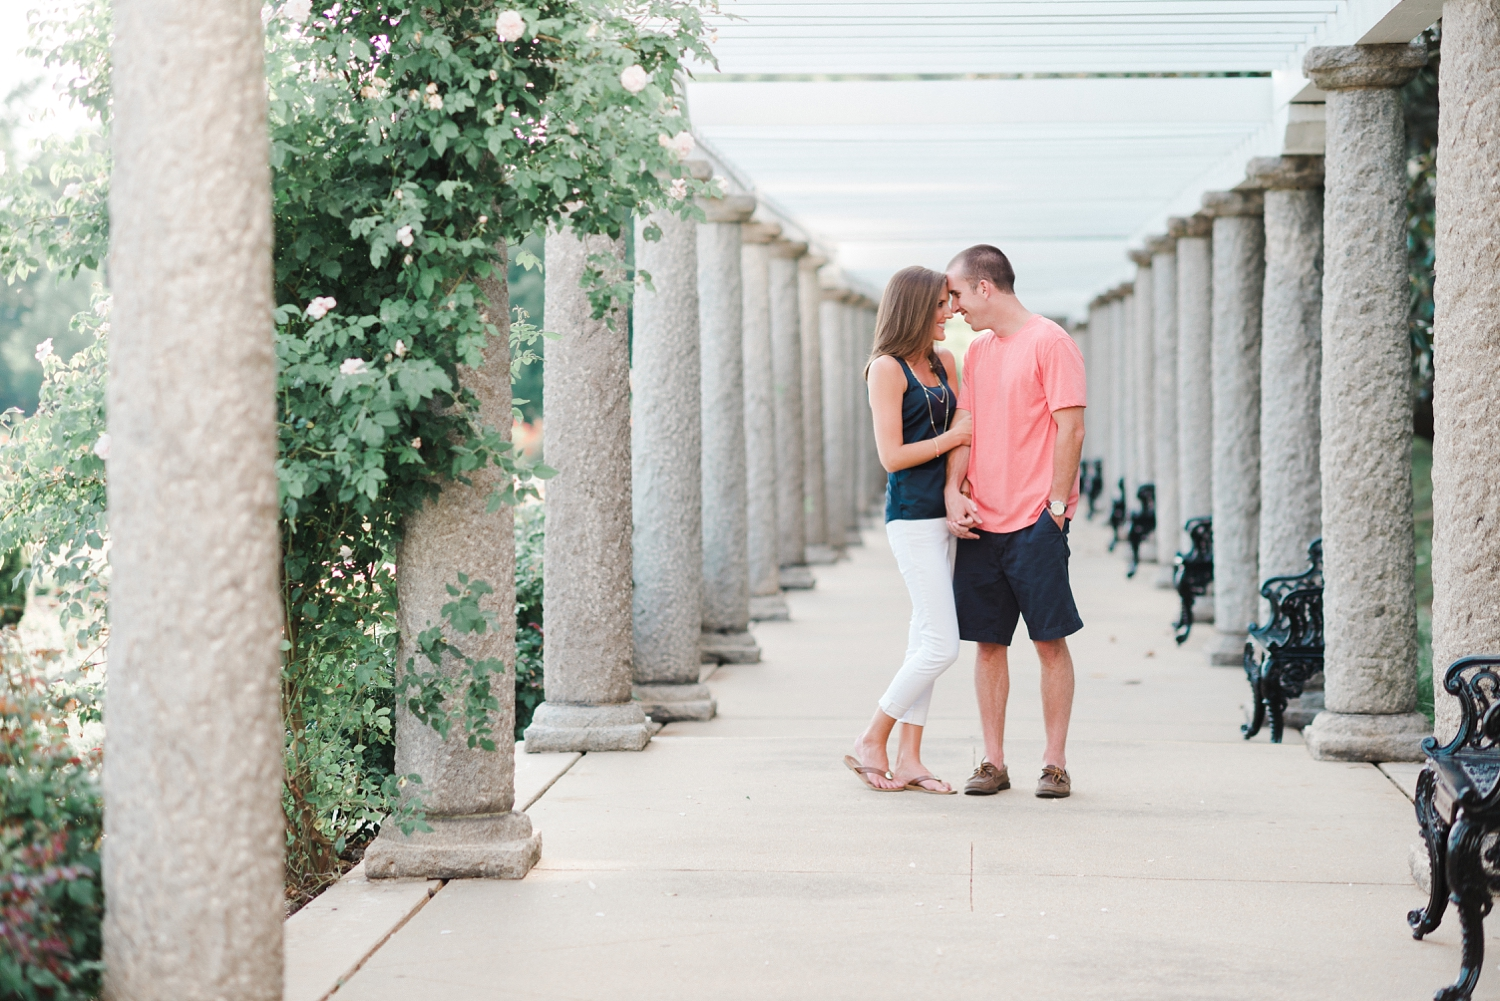 Maymon_Park_richmond_engagement_photography_0009.jpg